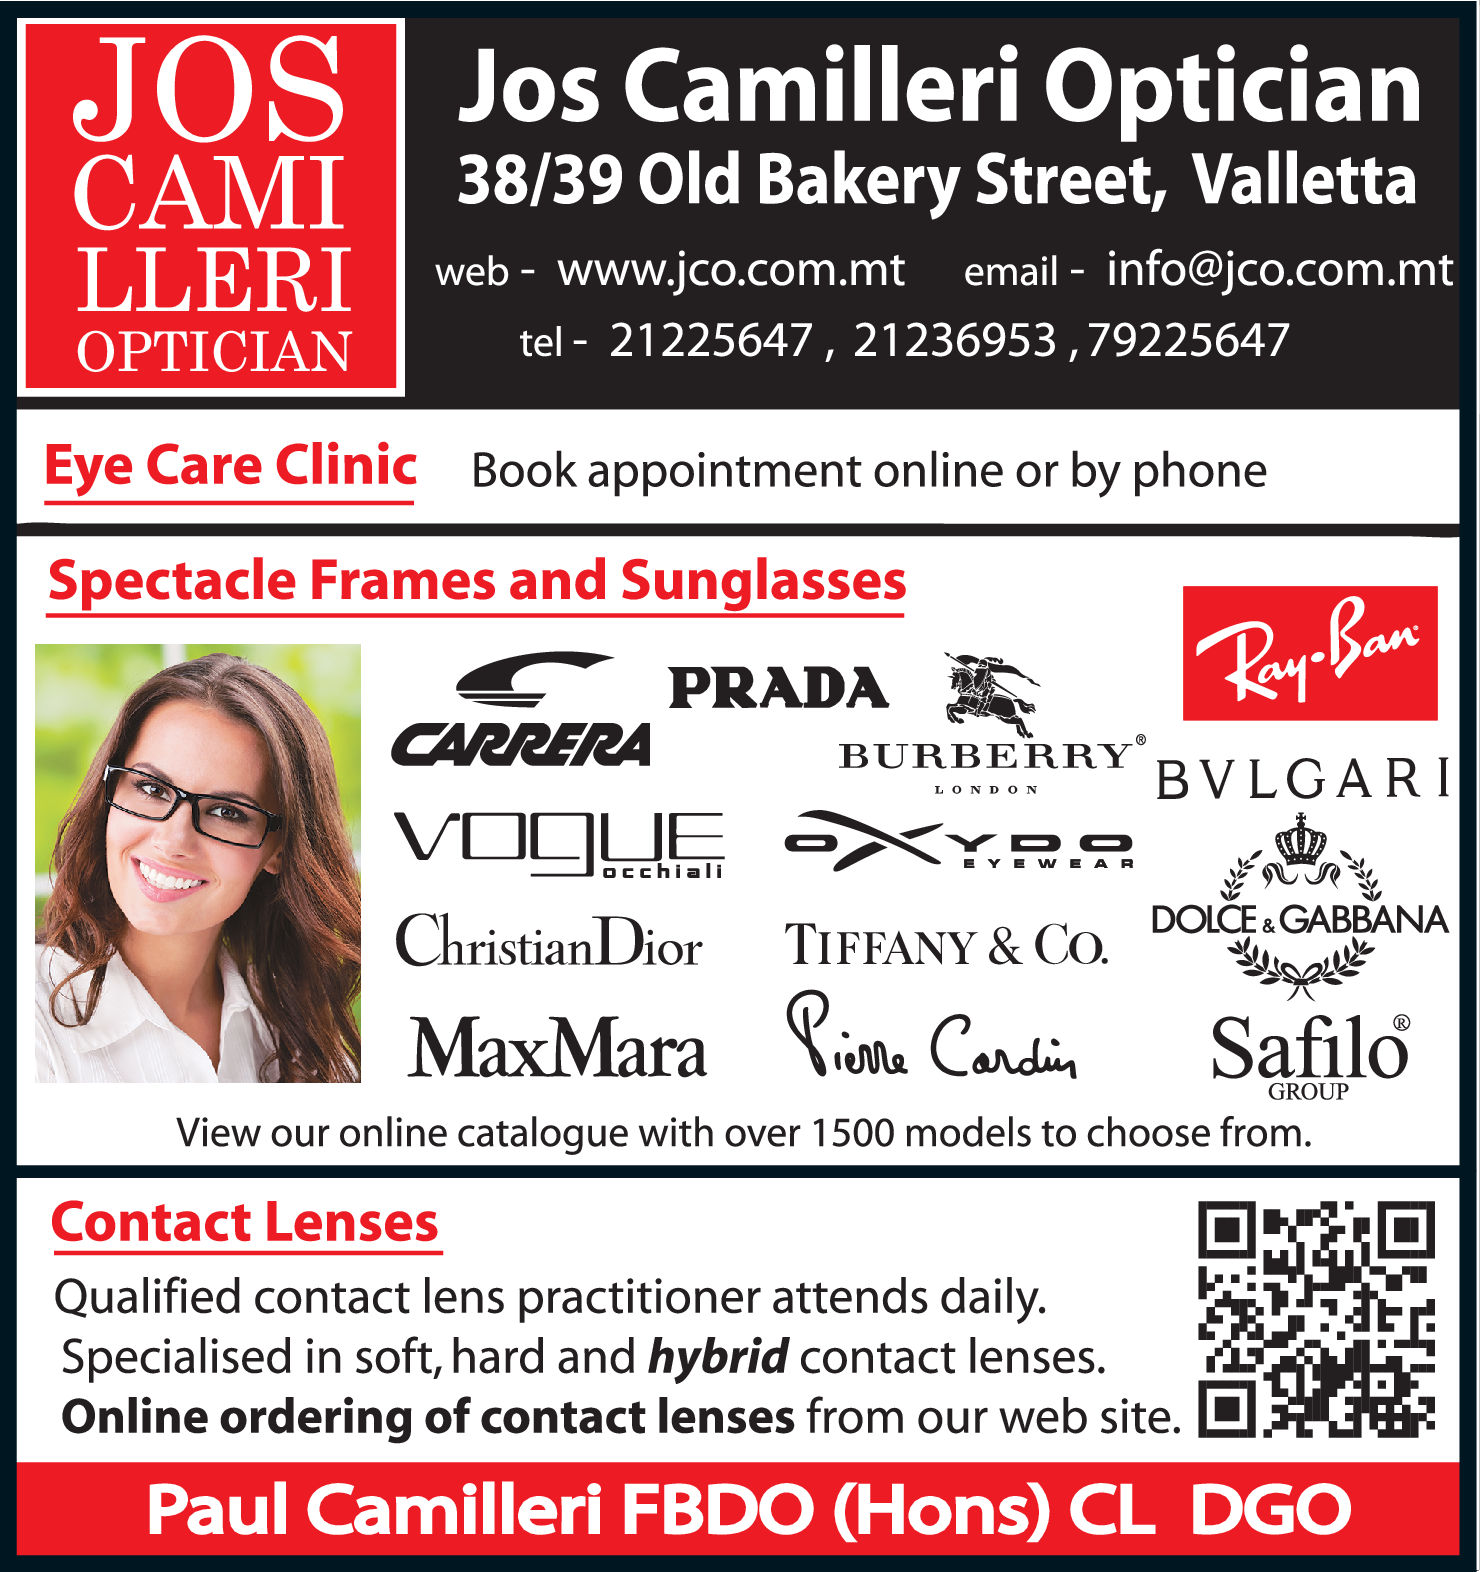 Camilleri Jos Optician - Opticians-Dispensing